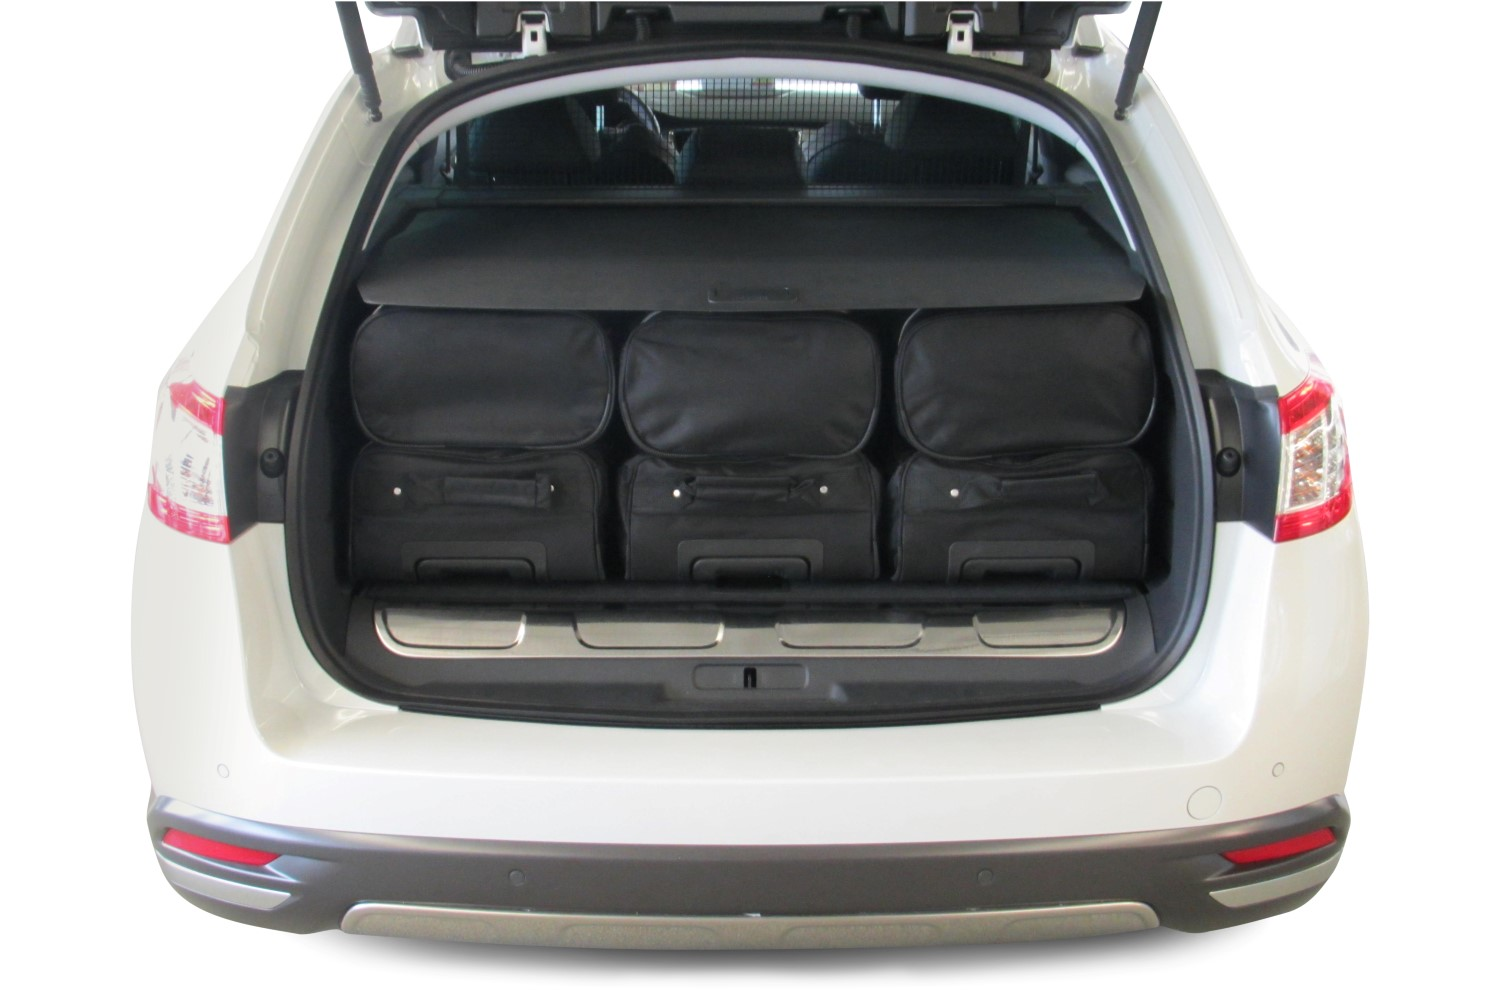 508 peugeot 508 rxh hybrid4 2012 present car bags travel bags. Black Bedroom Furniture Sets. Home Design Ideas